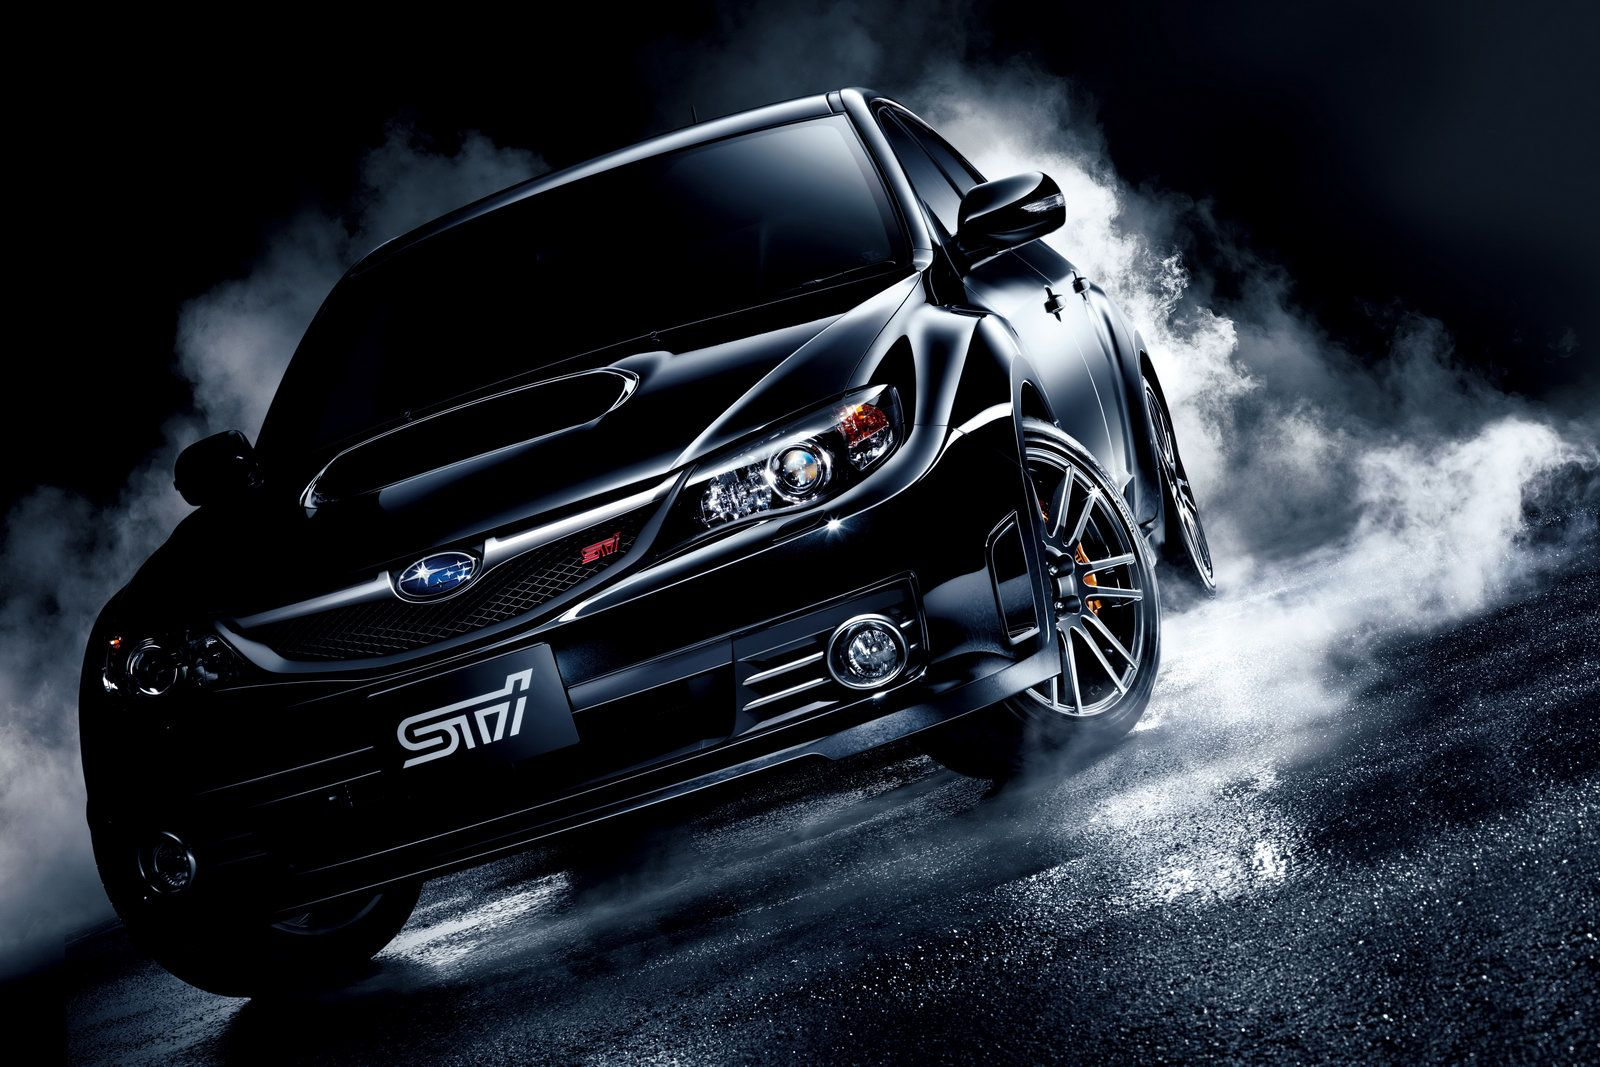 Search results for subaru impreza wrx sti 2009 wallpaper adorable wallpapers